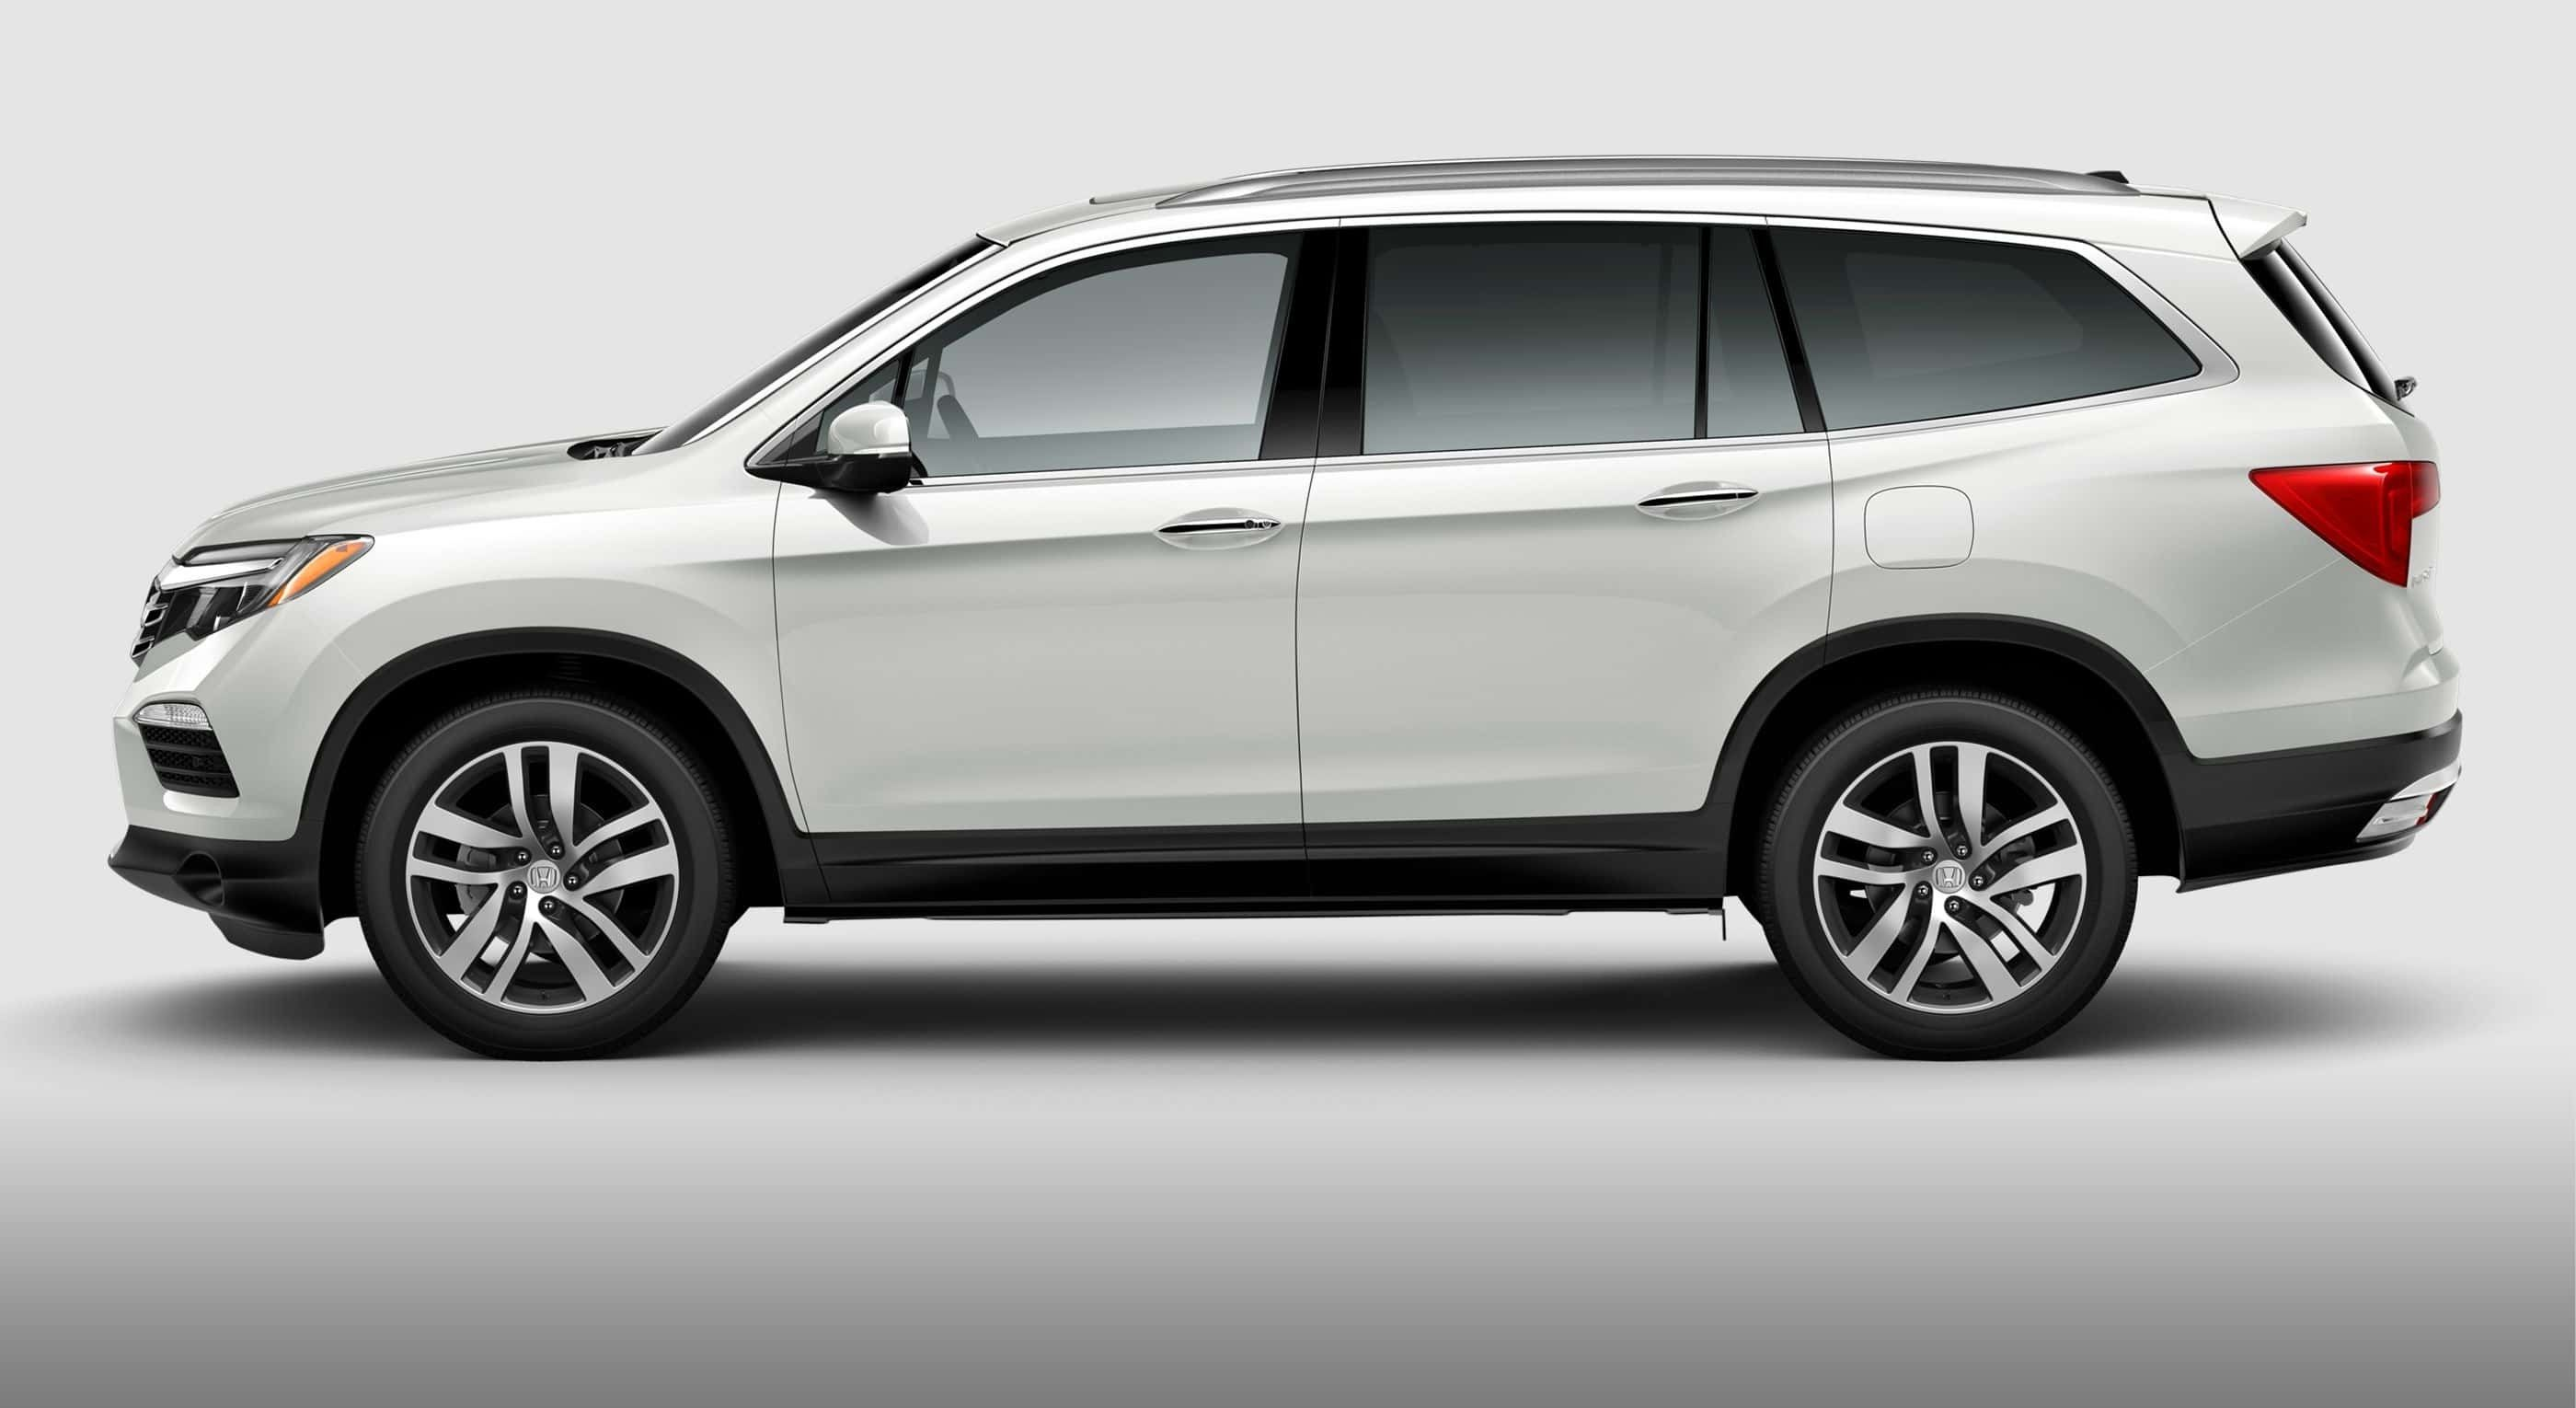 2019 Honda Pilot Safety Rating Specs and Review Honda